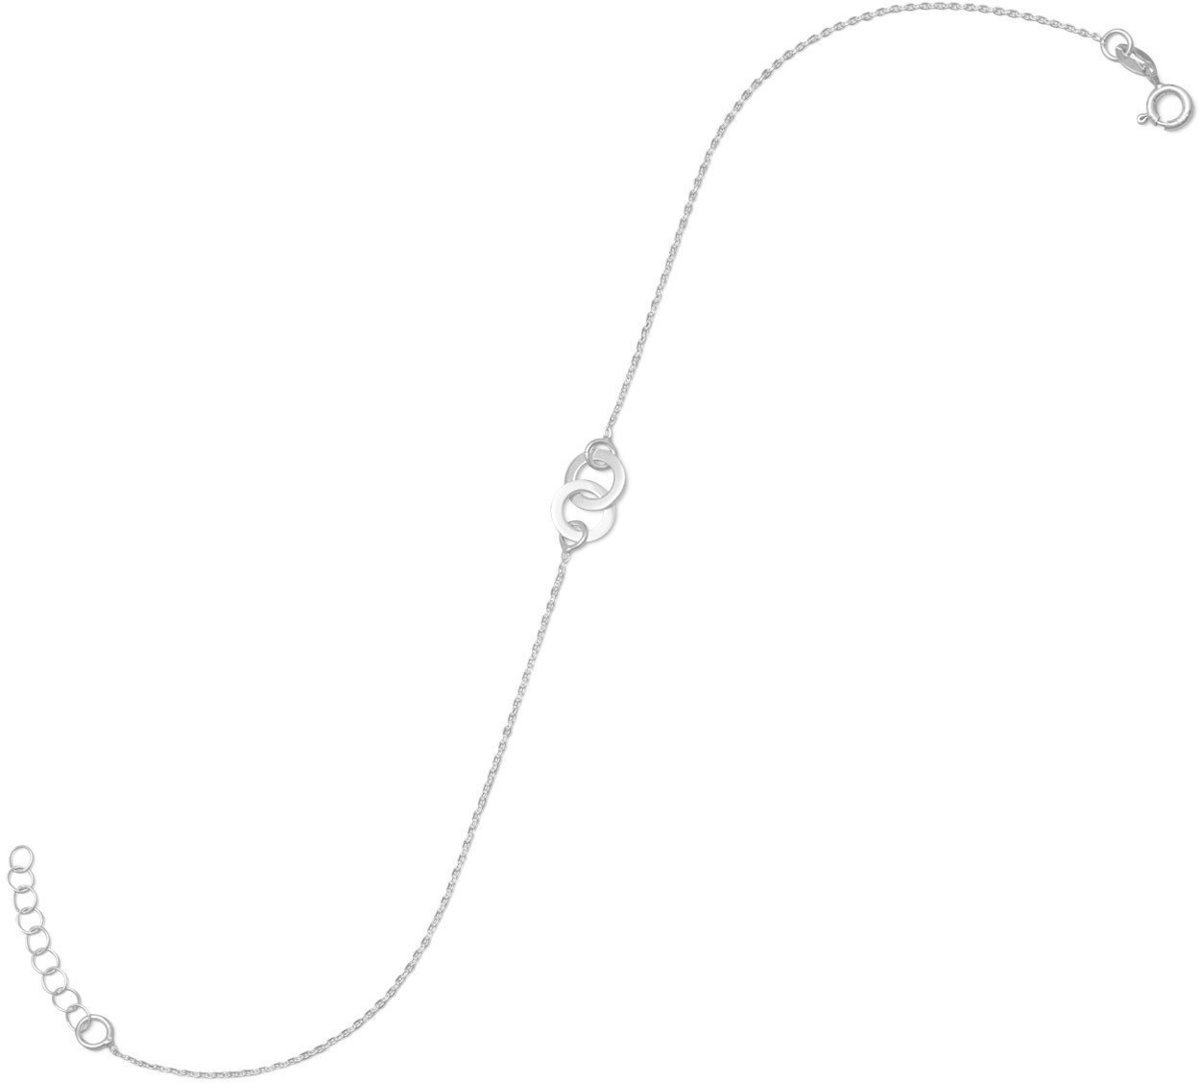 11 + 1 Double Circle Anklet 925 Sterling Silver